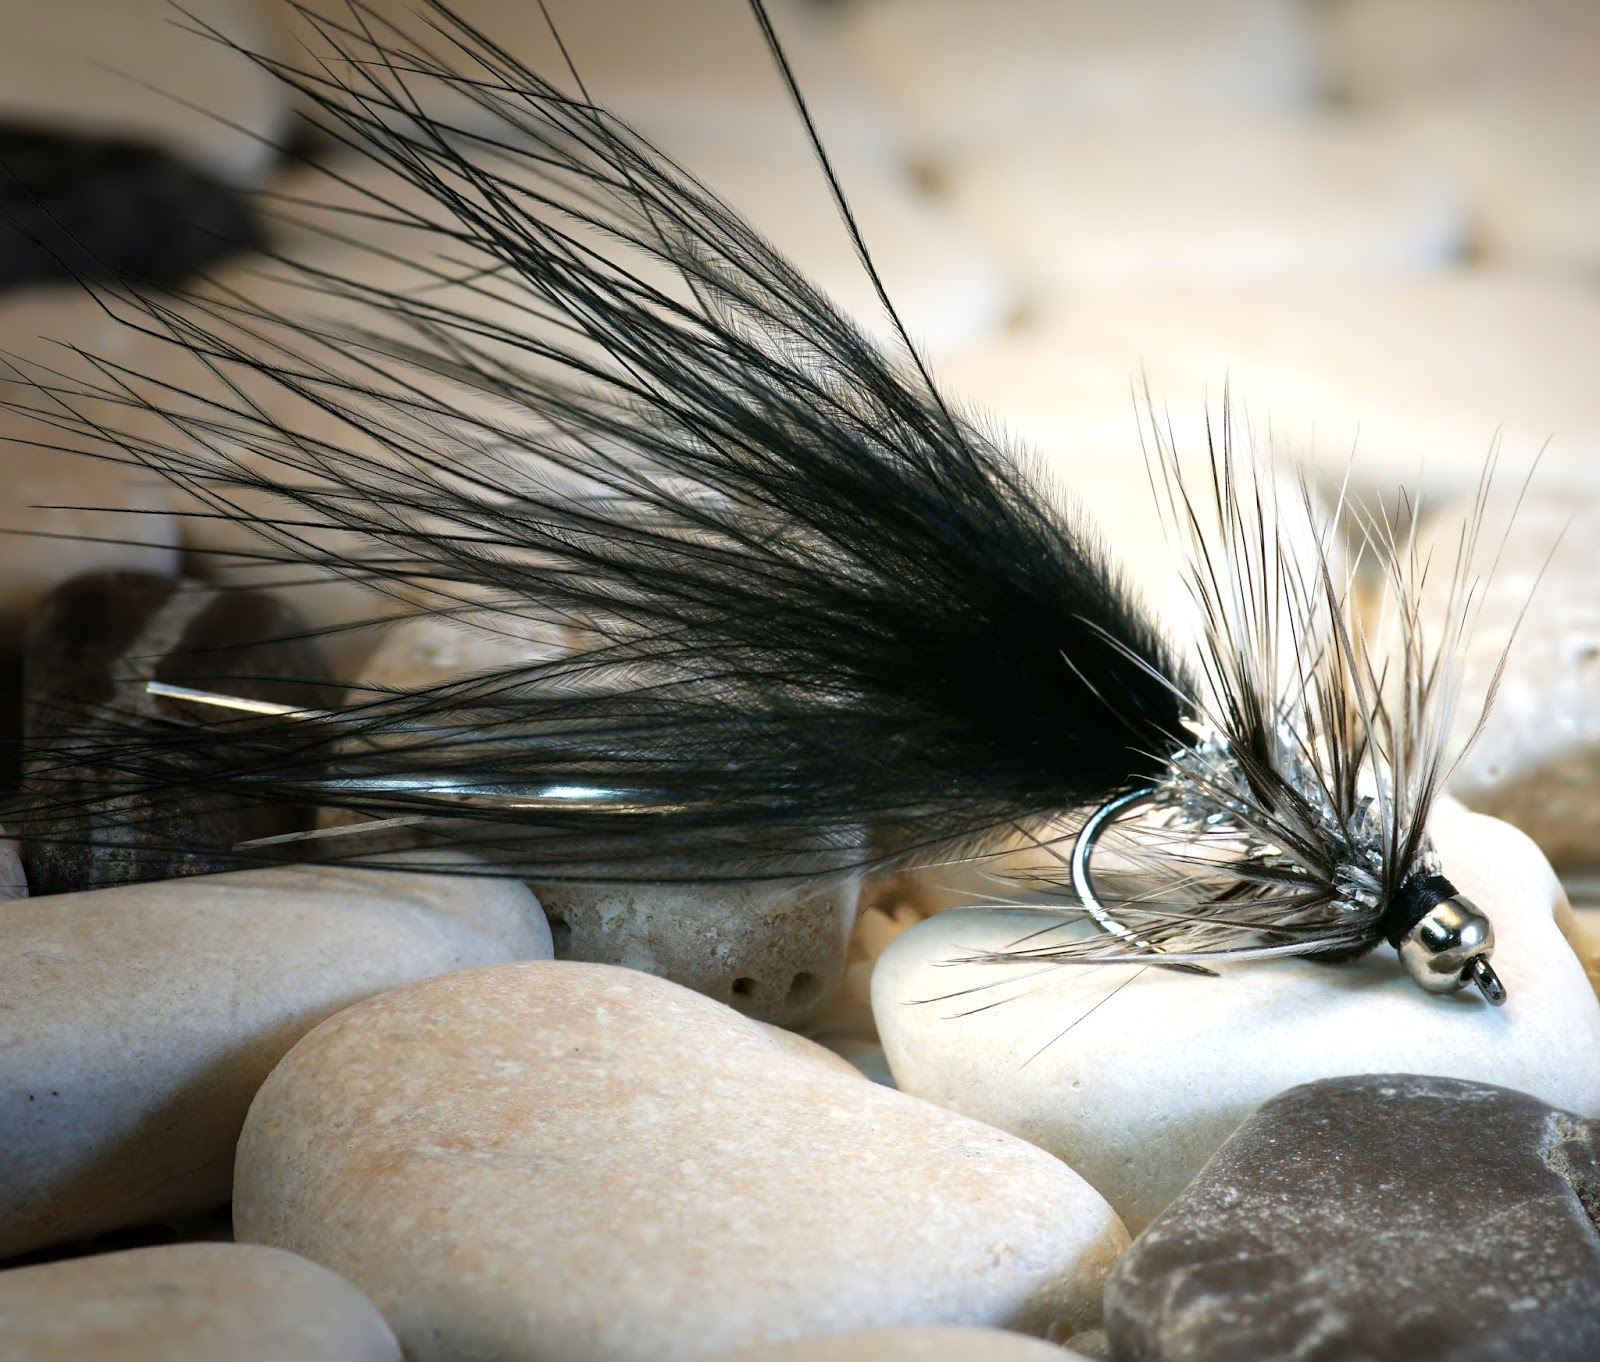 Fly Tying Whiting Silver Rooster Midge Saddle Unique Variant #E Angelsport-Artikel